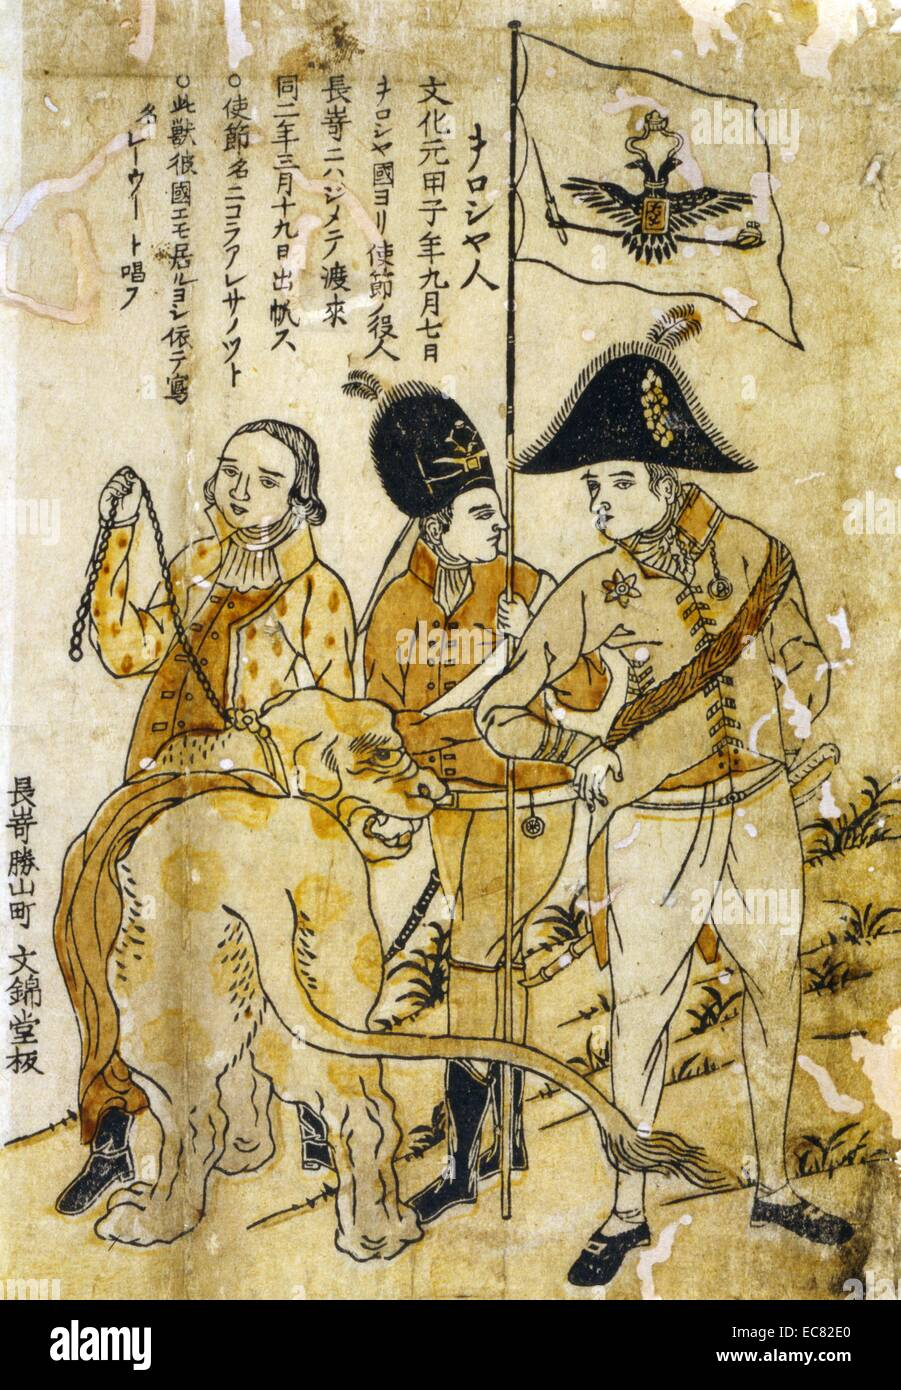 Japanese depiction of three Russians soldiers. - Stock Image